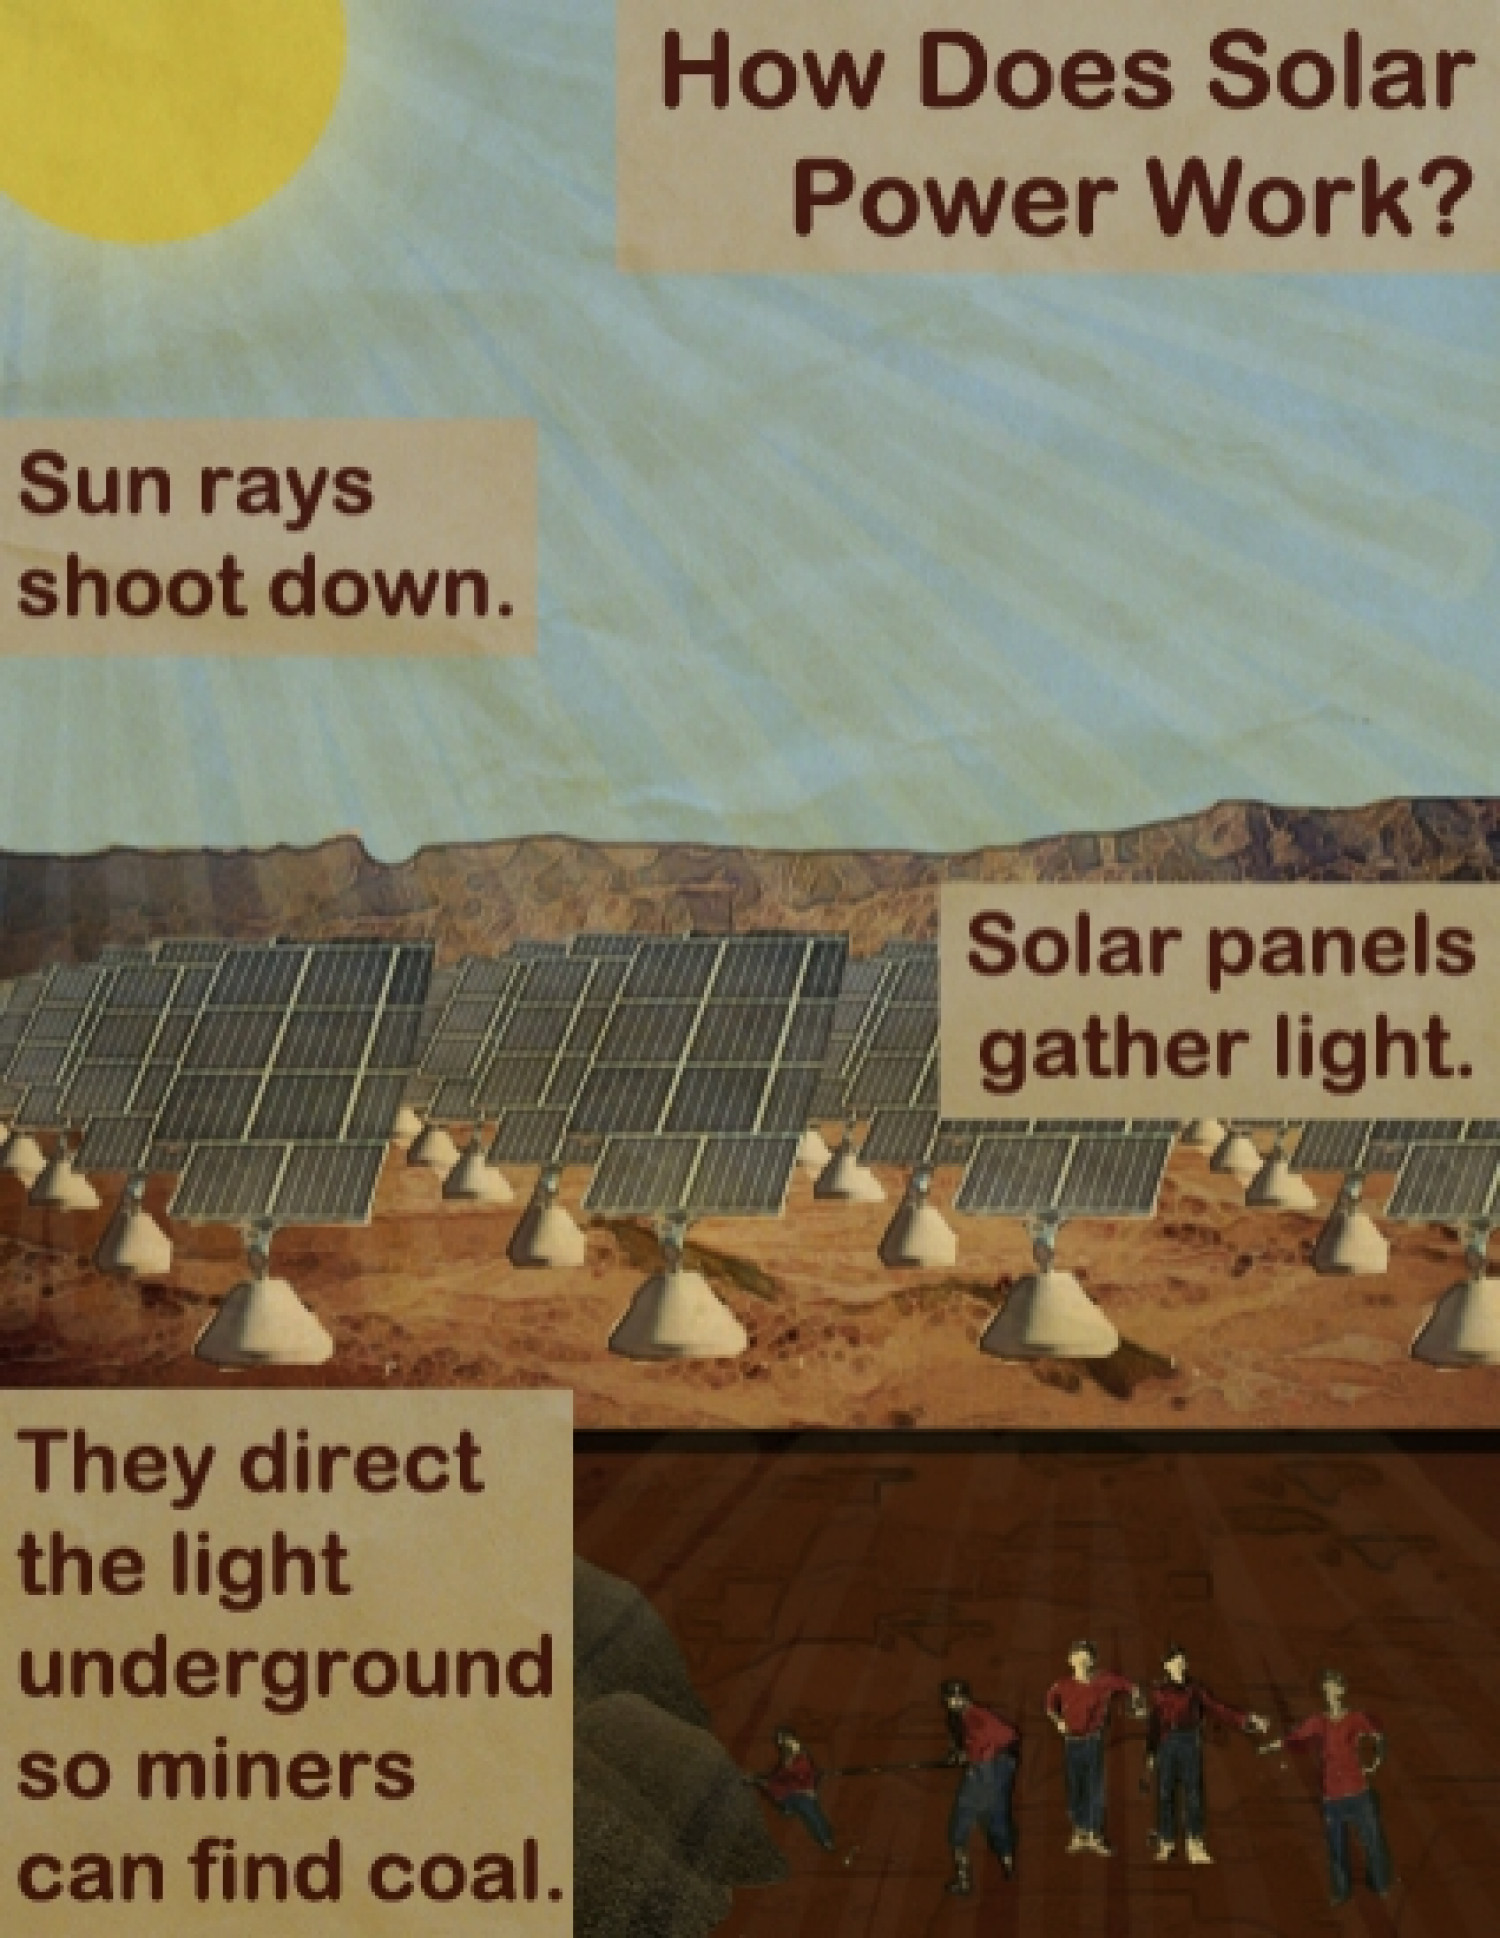 How Does Solar Power Work? Infographic